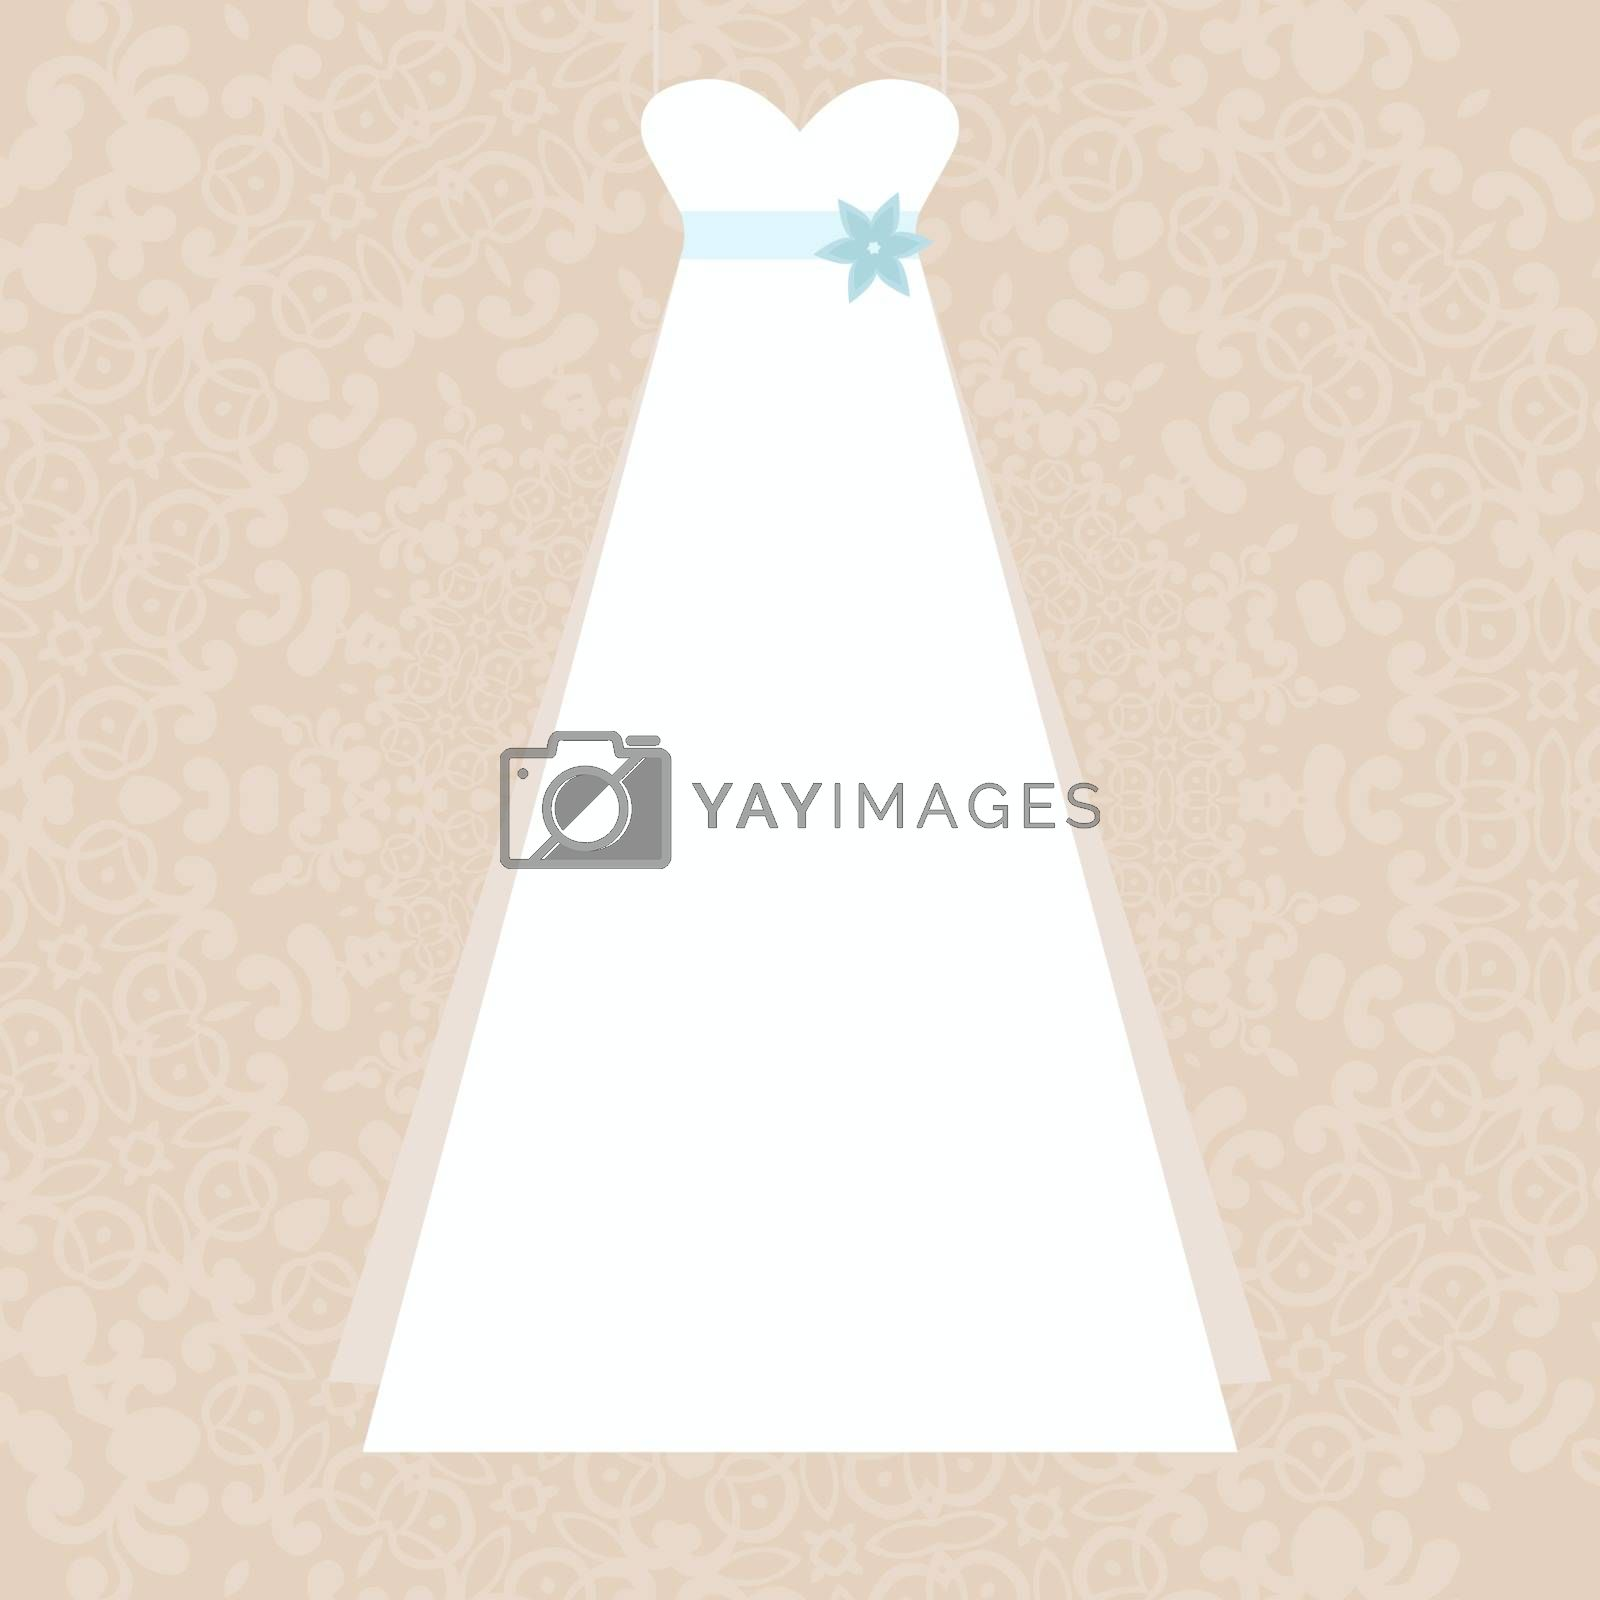 Elegant white dress illustration - symbol of a wedding on elegant lace background made in vector. Bridal illustration, Invitation template.